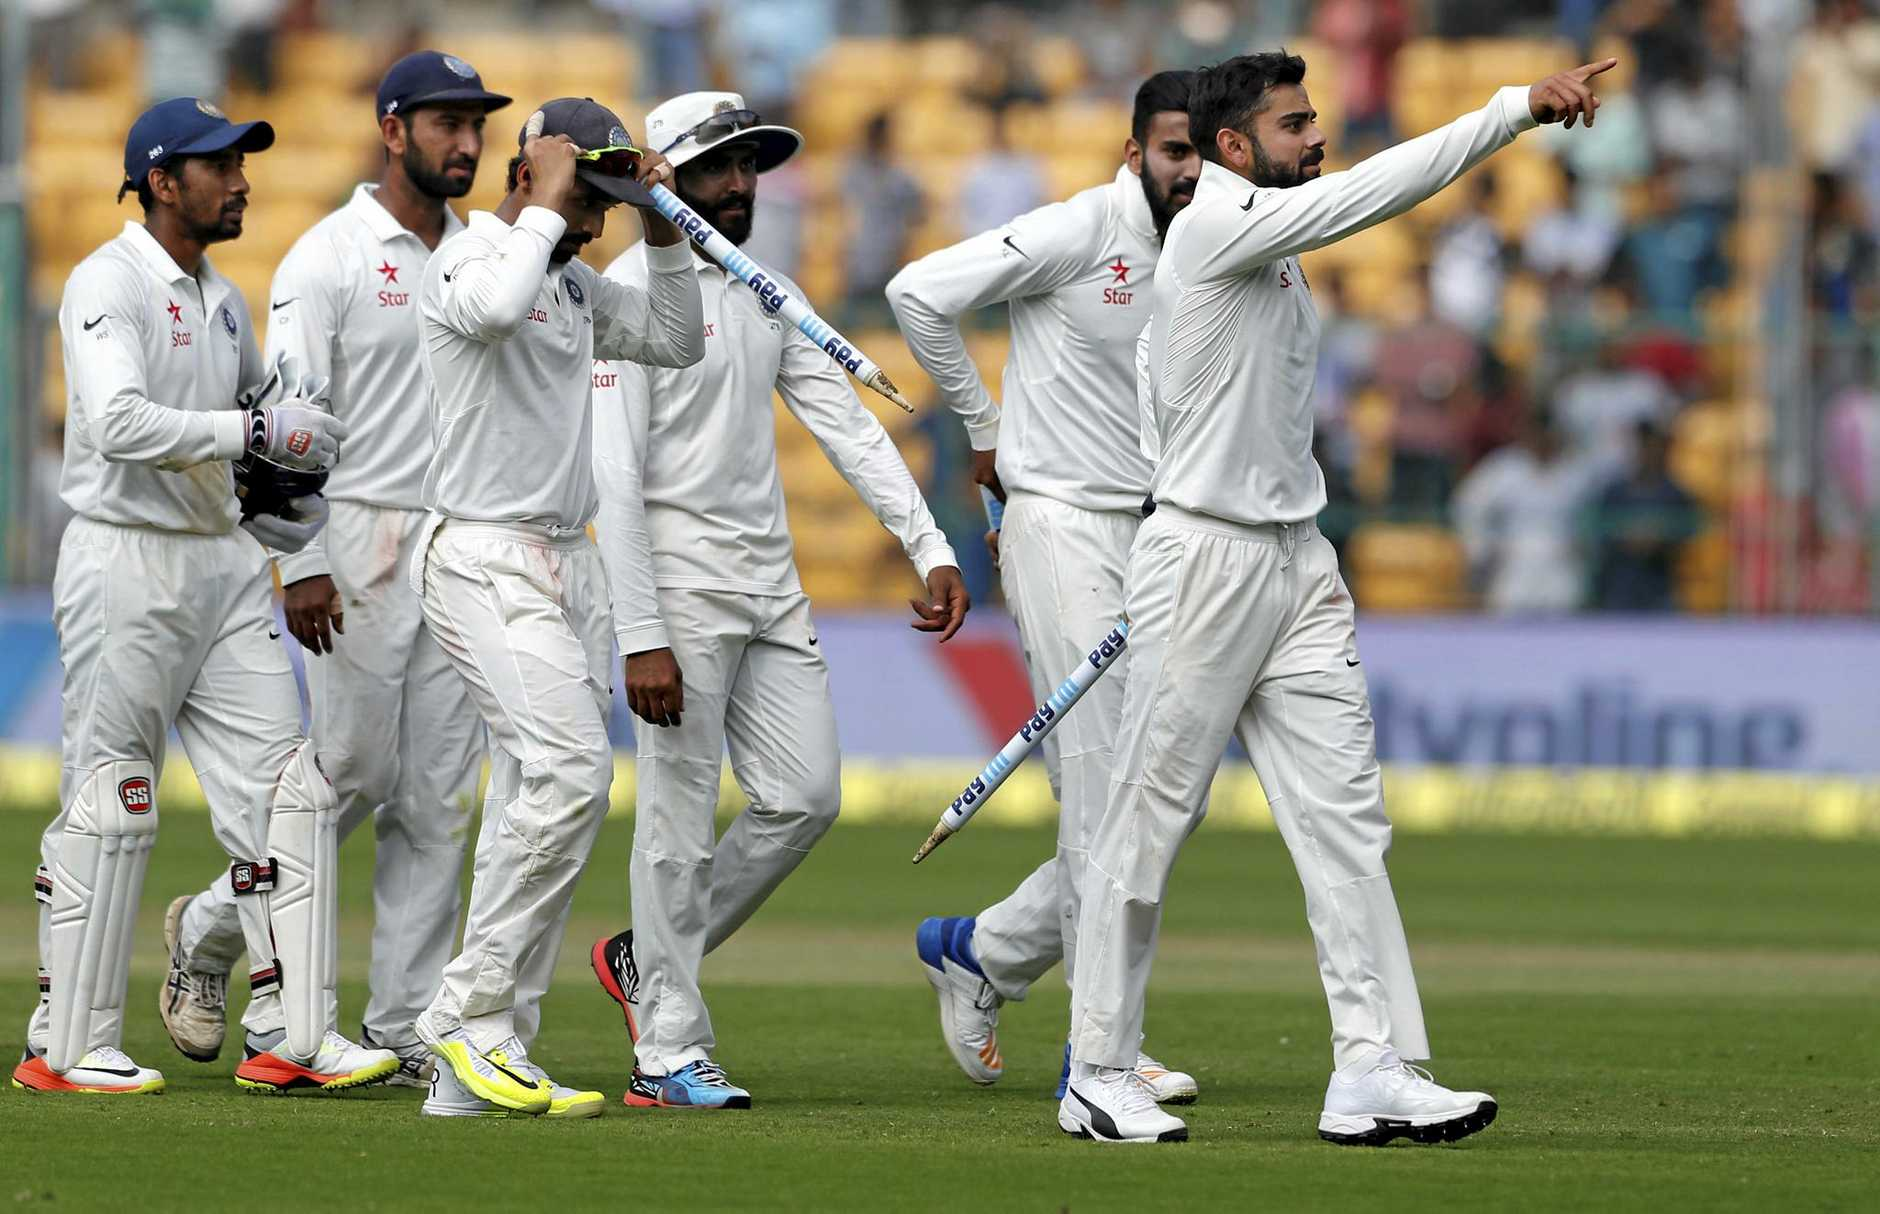 India's captain Virat Kohli, right, leads his teammates off the field after their win over Australia on the fourth day of their second test cricket match in Bangalore, India, Tuesday, March 7, 2017. Indian won the match by 75 runs. (AP Photo/Aijaz Rahi)